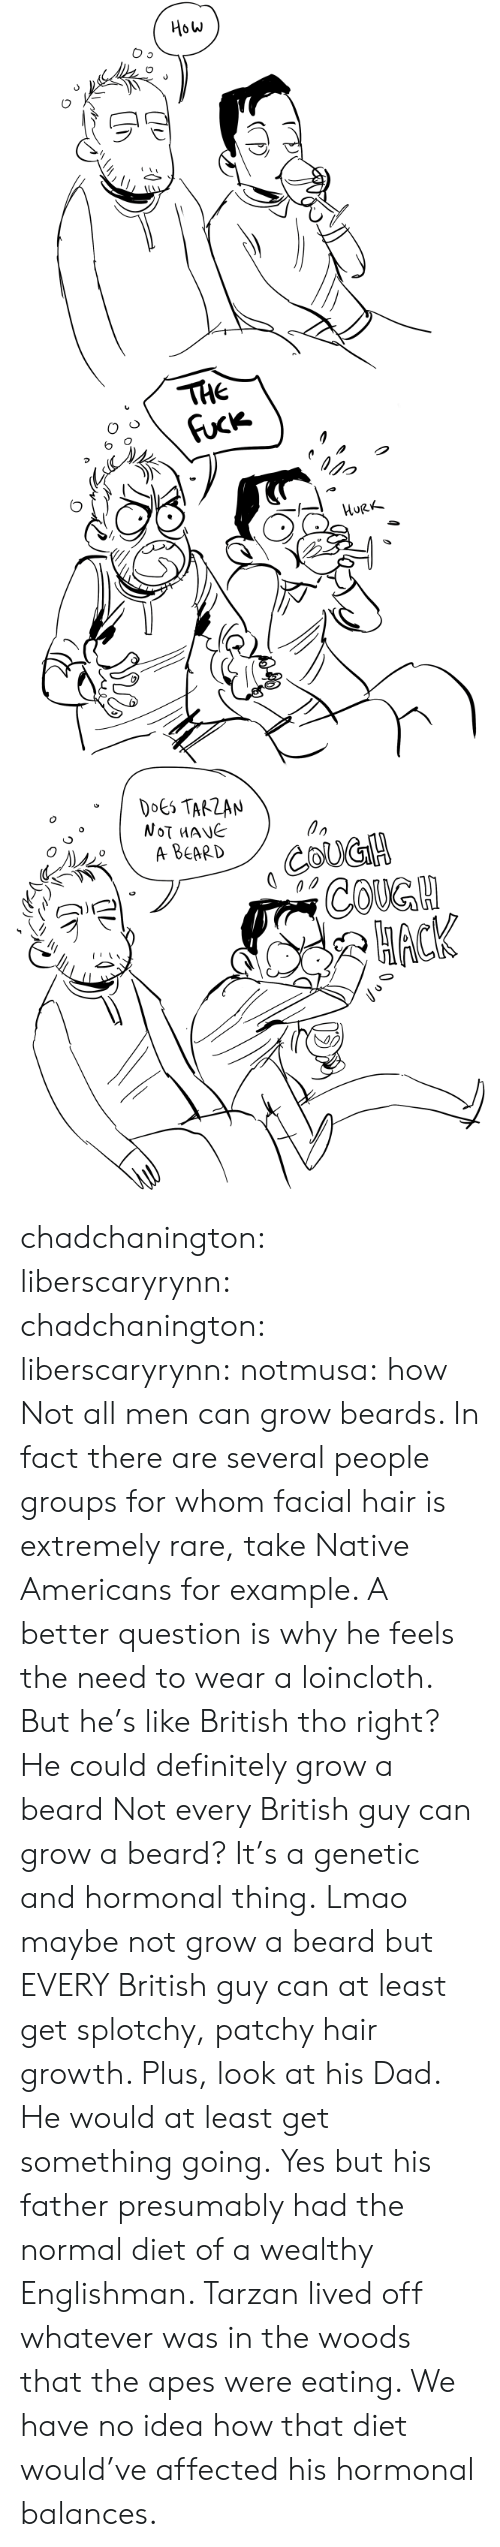 mane: How  THE  Fuck  орo  HURK  DOES TARZAN  NOT MANE  A ВЕARD  COUGH  СOKGH  НАСК chadchanington:  liberscaryrynn:  chadchanington:  liberscaryrynn:  notmusa:  how  Not all men can grow beards. In fact there are several people groups for whom facial hair is extremely rare, take Native Americans for example. A better question is why he feels the need to wear a loincloth.  But he's like British tho right? He could definitely grow a beard  Not every British guy can grow a beard? It's a genetic and hormonal thing.  Lmao maybe not grow a beard but EVERY British guy can at least get splotchy, patchy hair growth. Plus, look at his Dad. He would at least get something going.  Yes but his father presumably had the normal diet of a wealthy Englishman. Tarzan lived off whatever was in the woods that the apes were eating. We have no idea how that diet would've affected his hormonal balances.